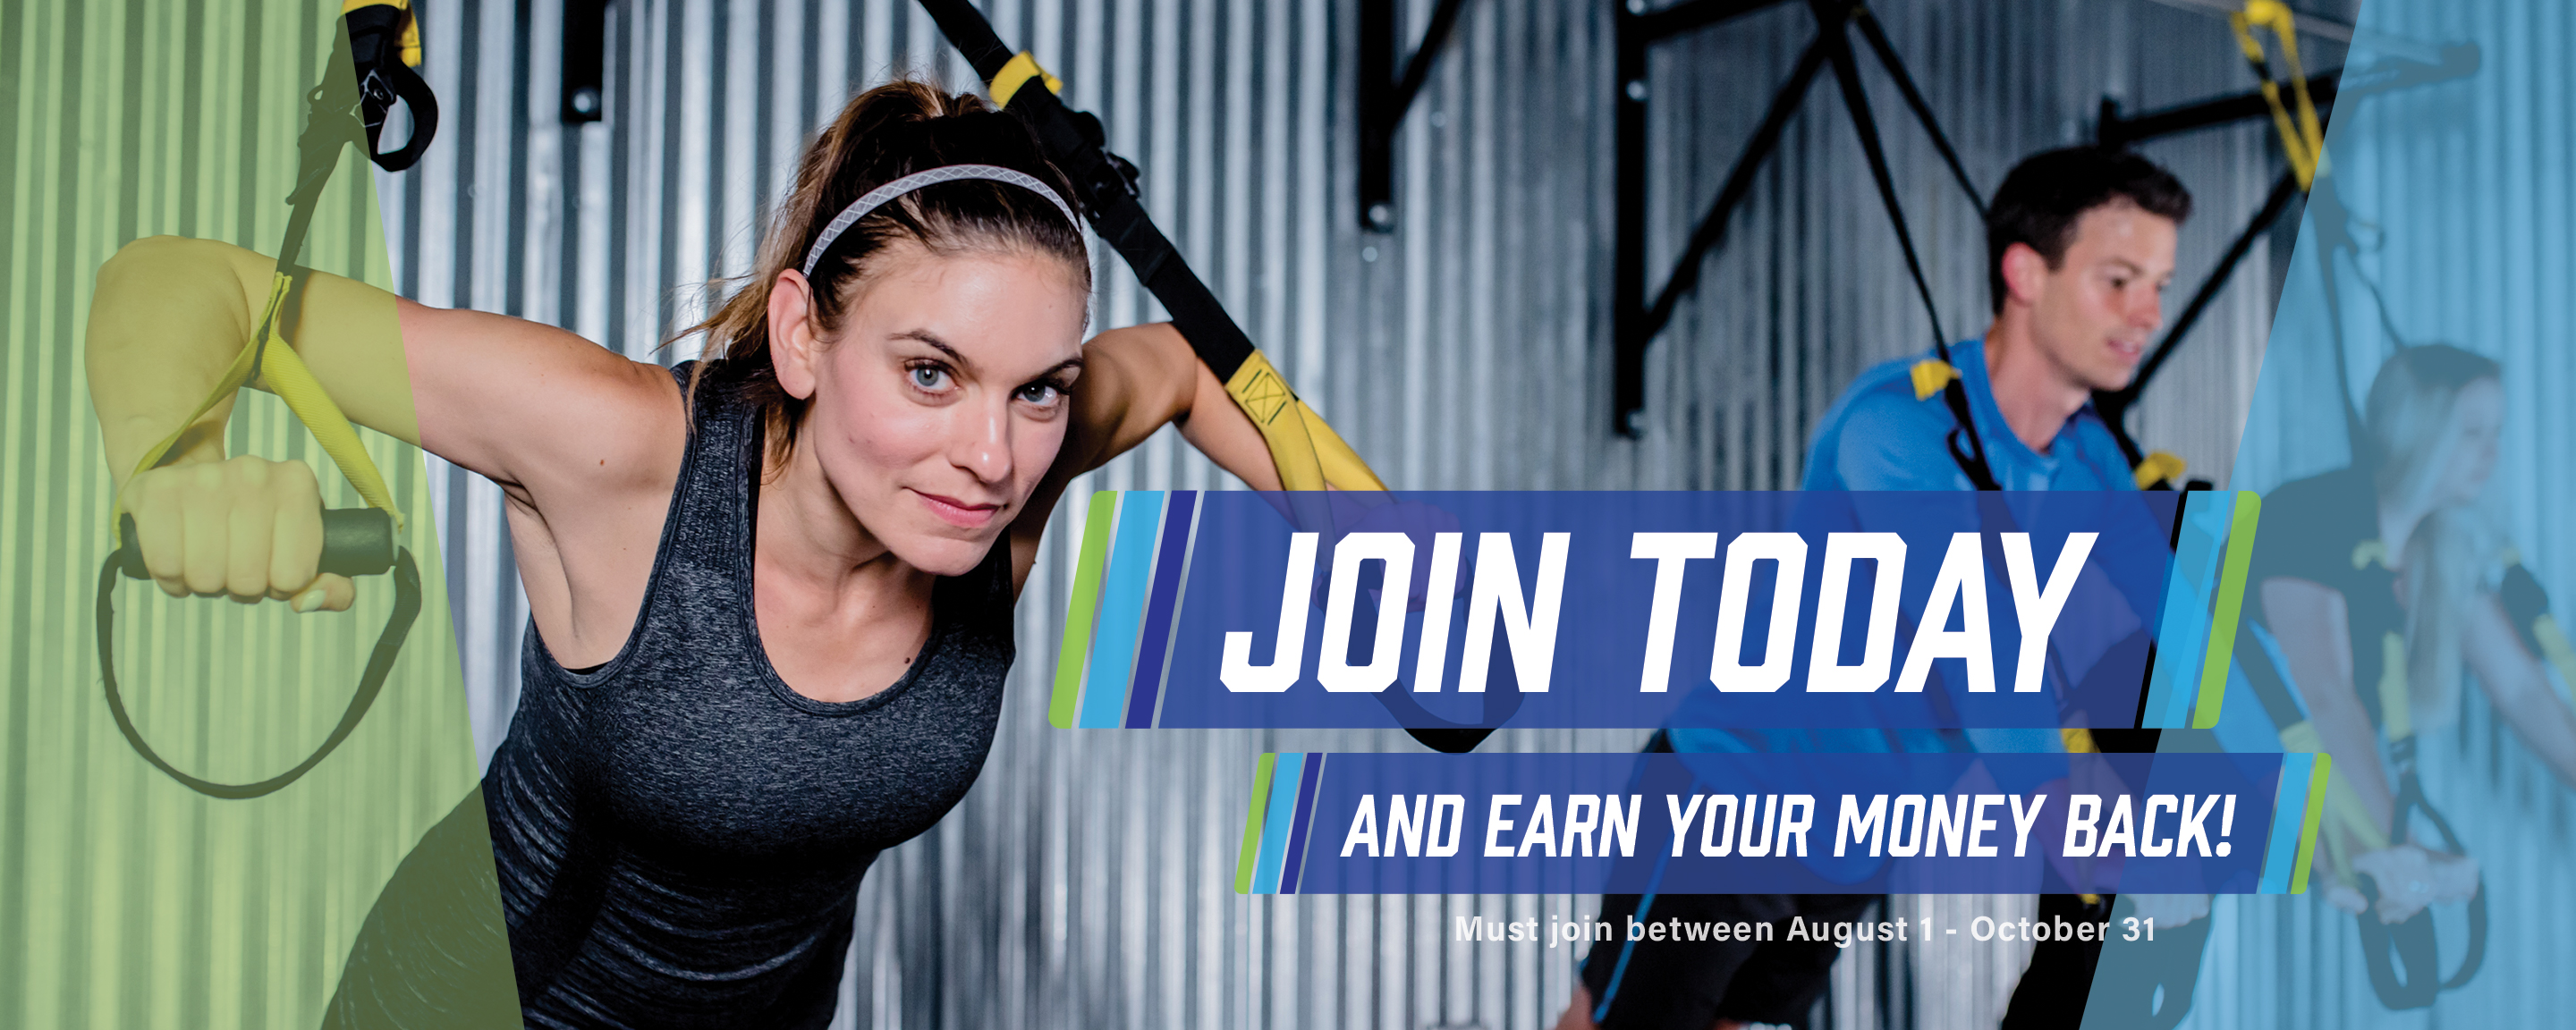 Join Today and Earn Your Money Back at Courts Plus Elmhurst